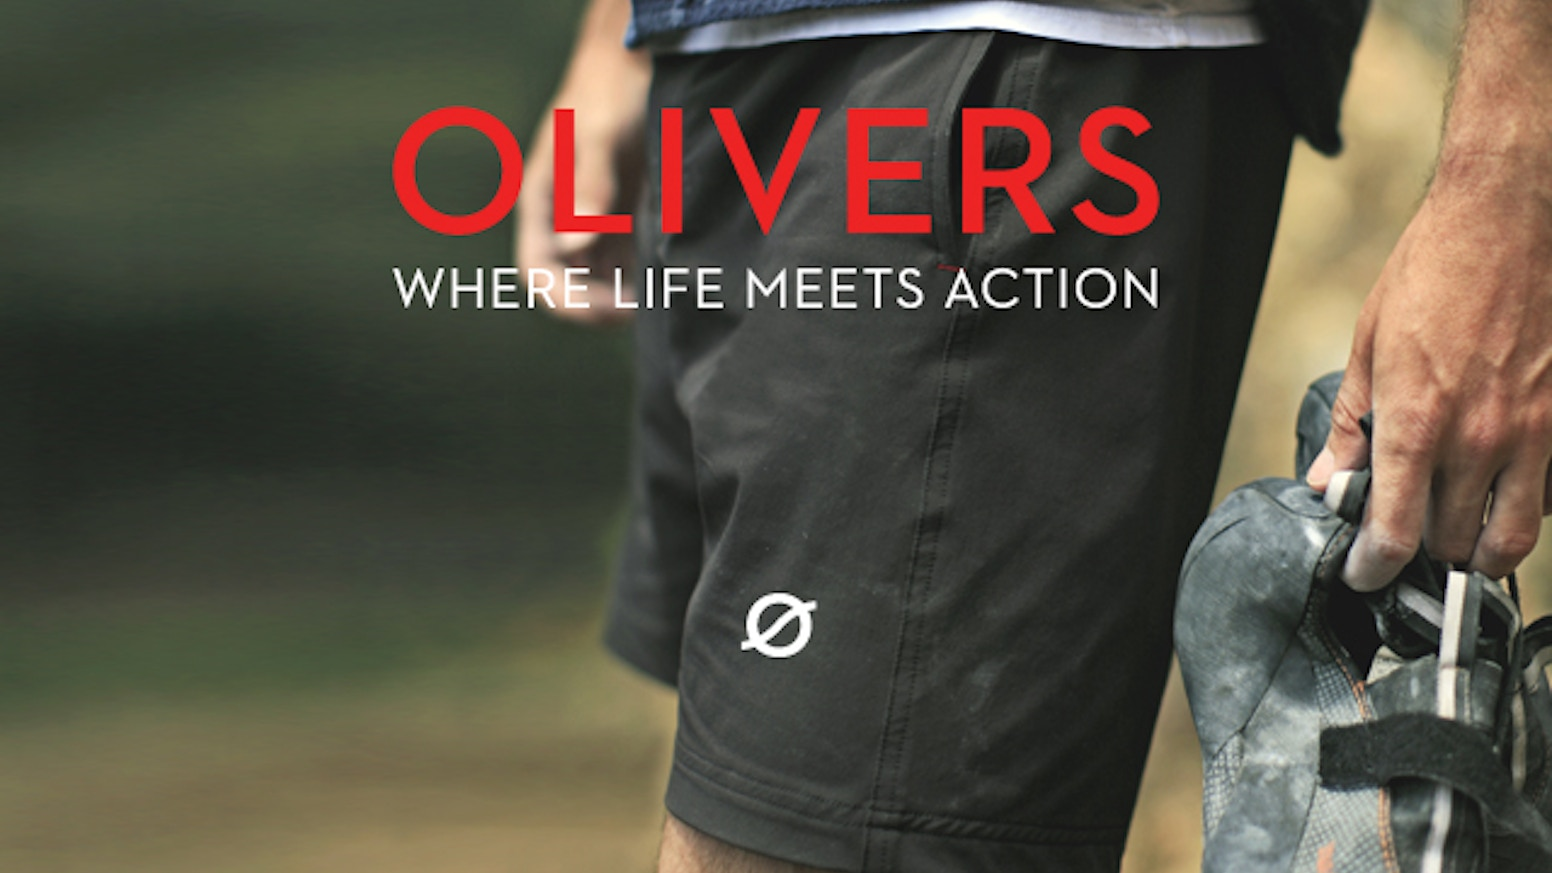 d2fc84f137 OLIVERS: The Last Pair of Athletic Shorts You'll Ever Need by David ...